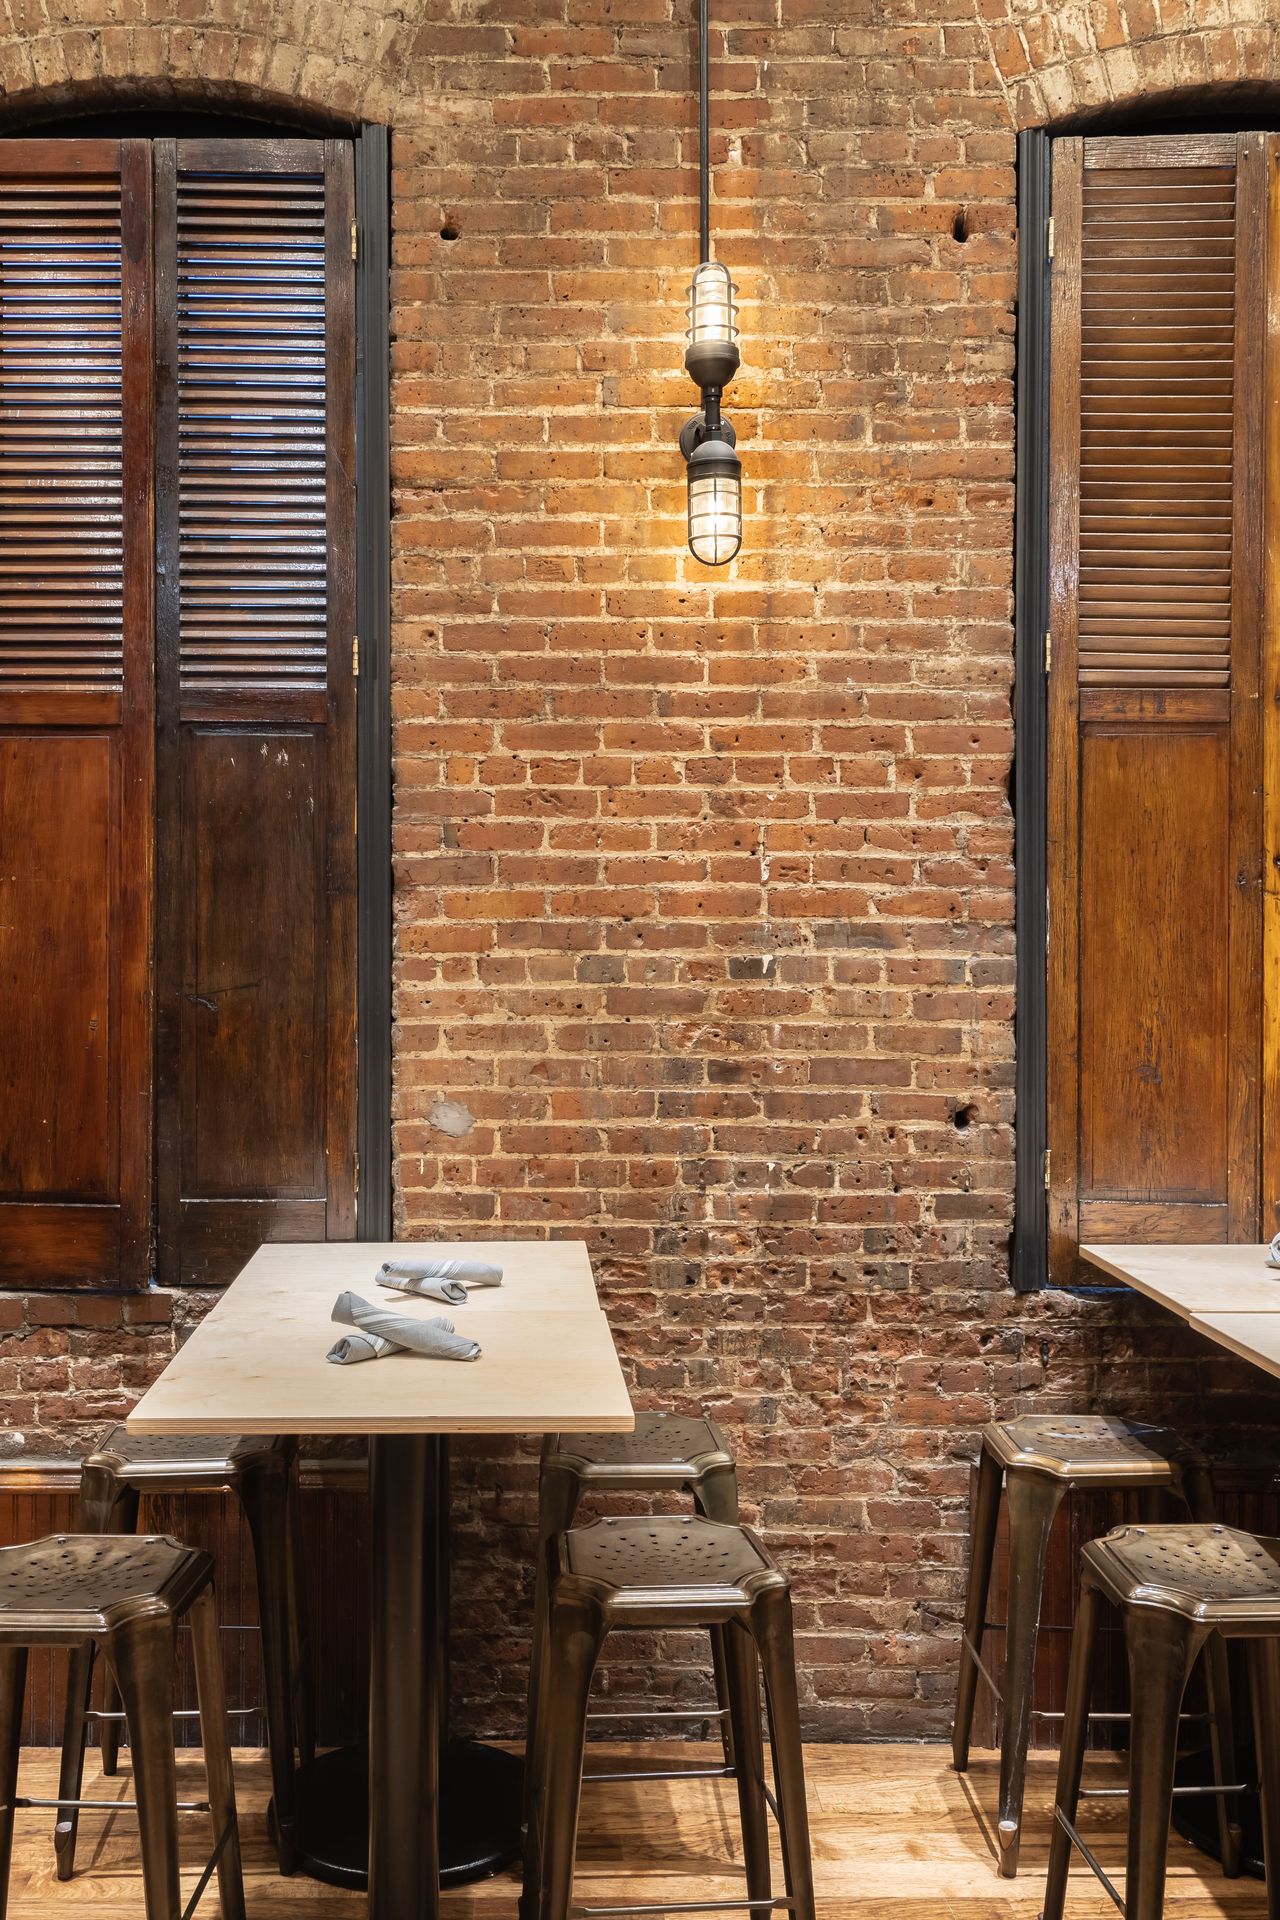 Along the walls, more industrial lights highlight the texture of the old brickwork. Atomic Topless Double Industrial Guard Sconces, customized with standard cast guards, Textured Black finish, and ribbed glass, cast a soft glow over the bricks while maintaining the industrial vibe.